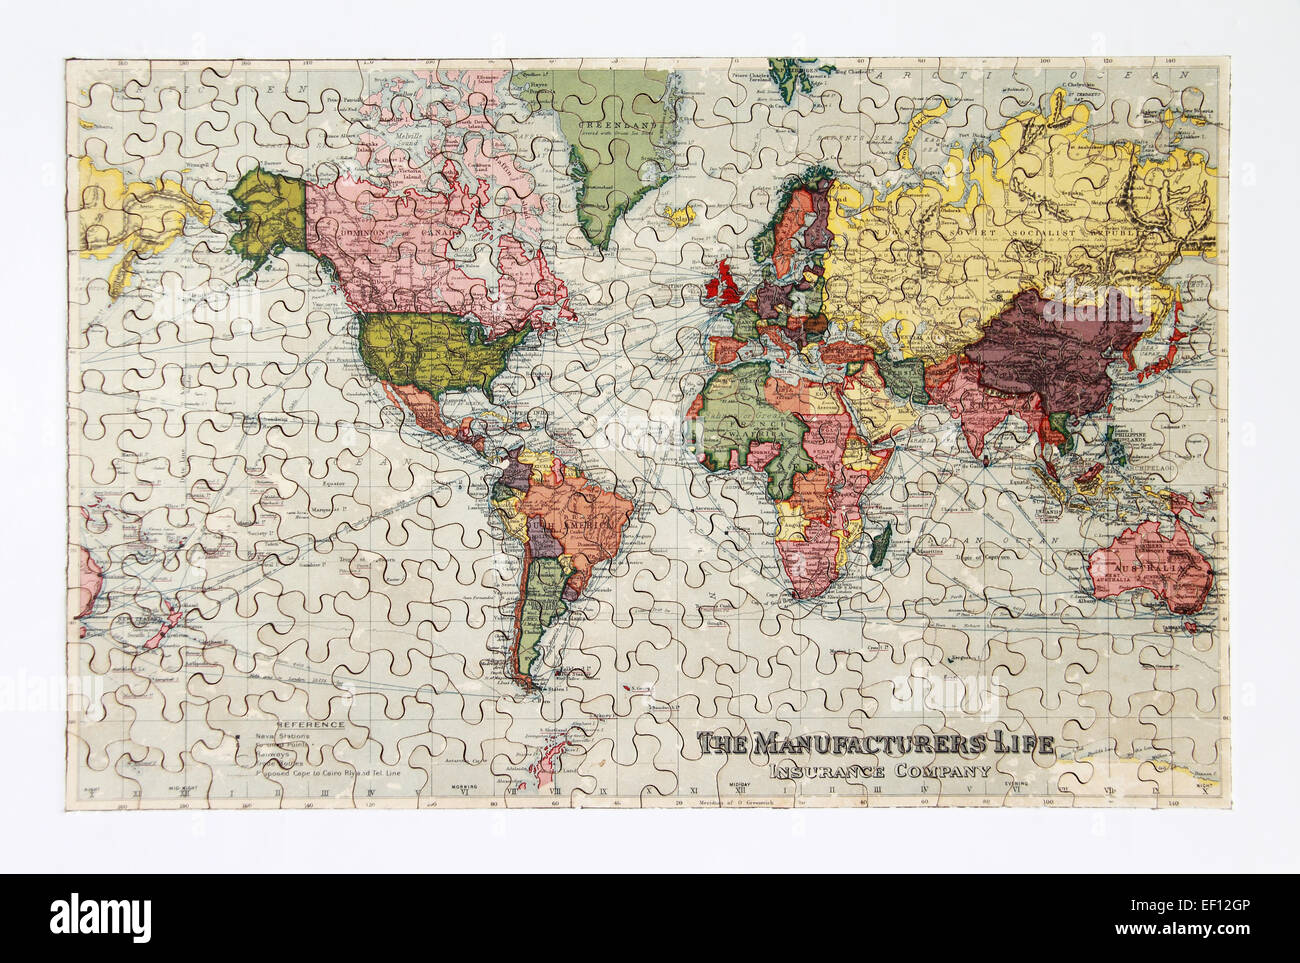 1930s world map jigsaw produced on behalf of manufacturers life 1930s world map jigsaw produced on behalf of manufacturers life insurance company now munulife actual size 480mm x 312mm gumiabroncs Choice Image